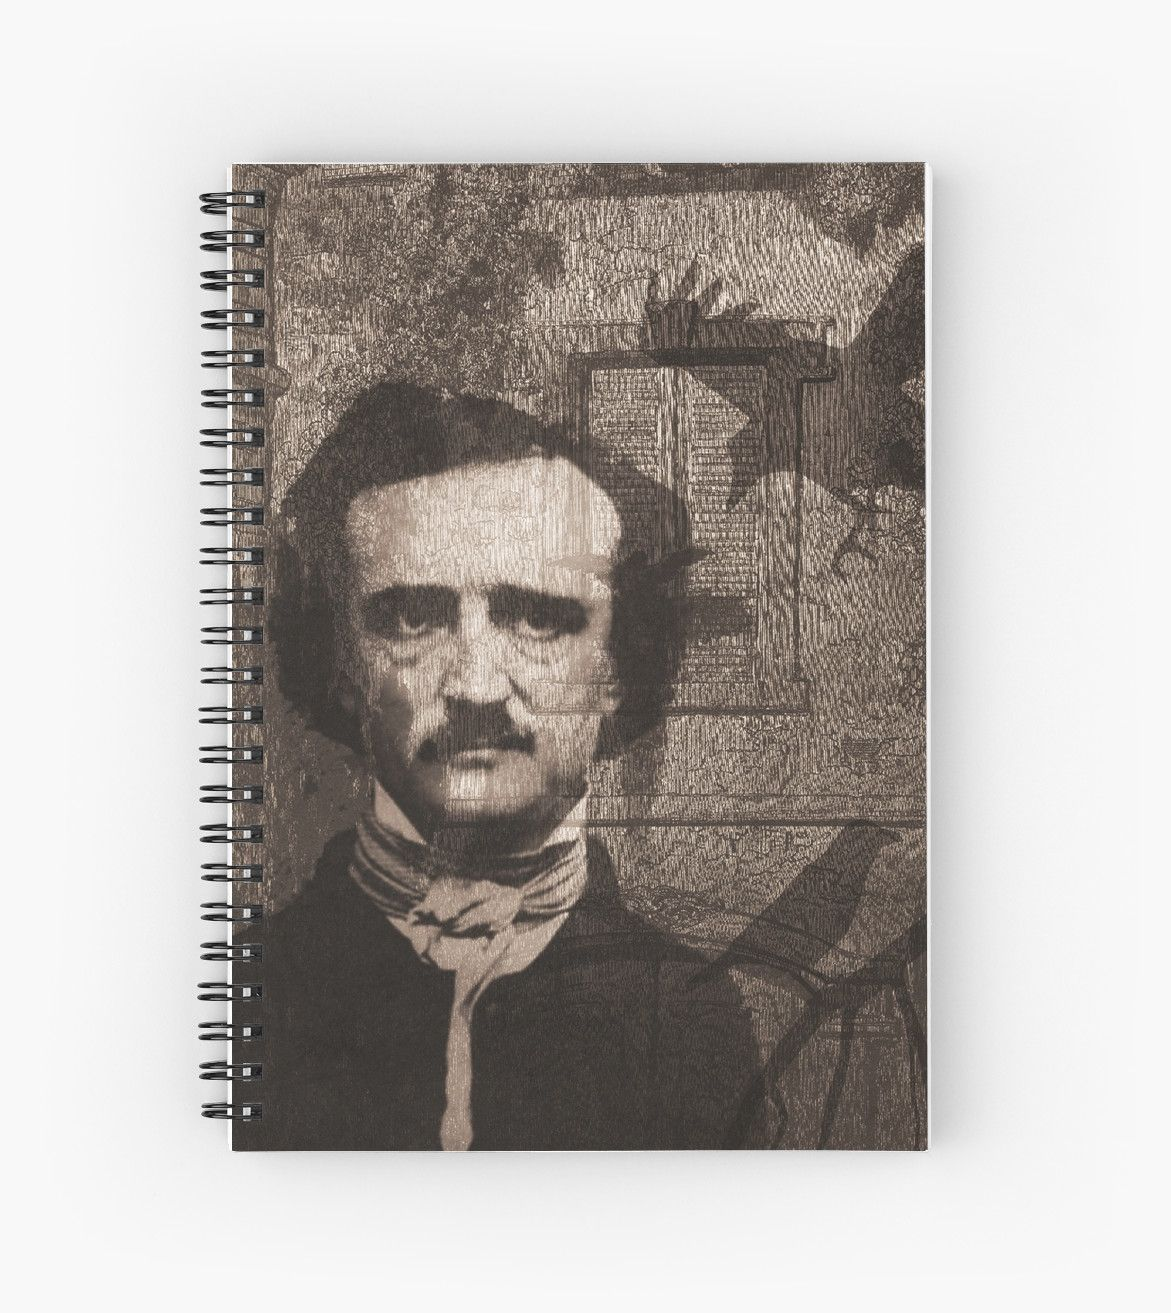 Edgar Allan Poe Also Buy This Artwork On Stationery Apparel Stickers And More Poster Prints Art Edgar Allan Poe